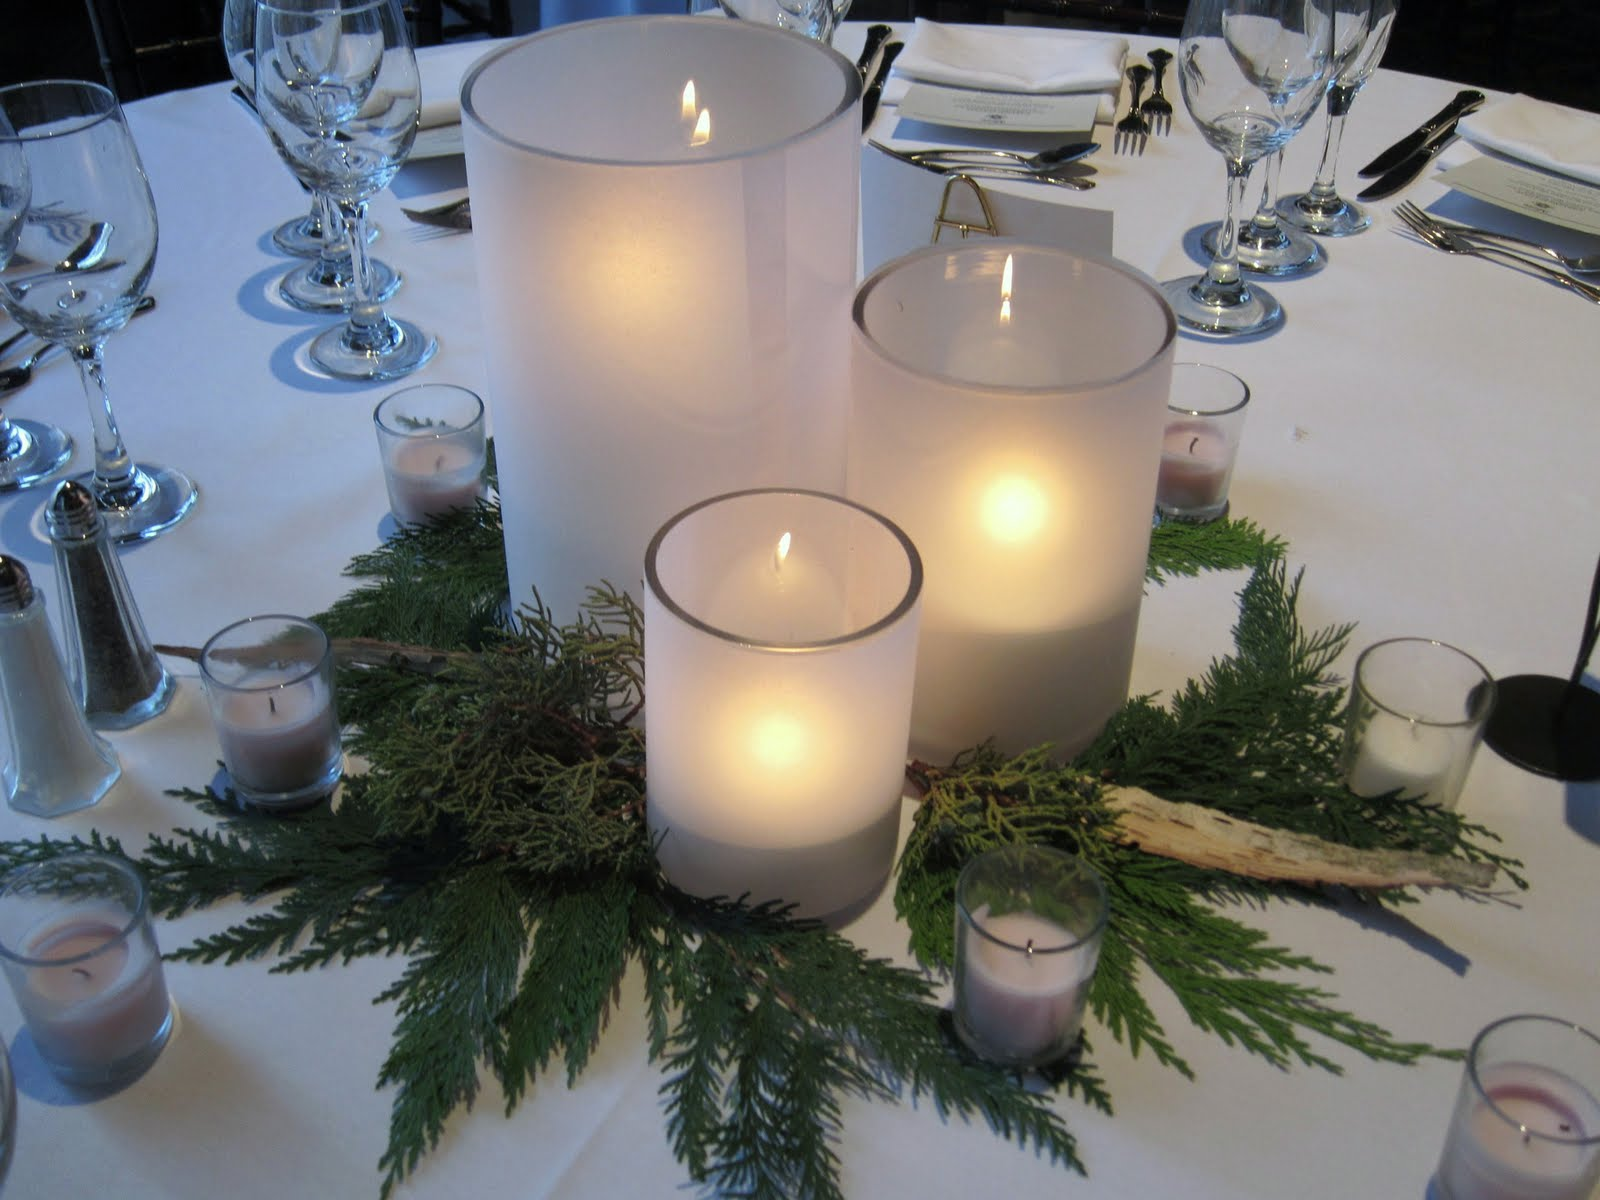 #926C39 Winter White Wedding Blush Floral Design 6567 décoration table de noel neige 1600x1200 px @ aertt.com